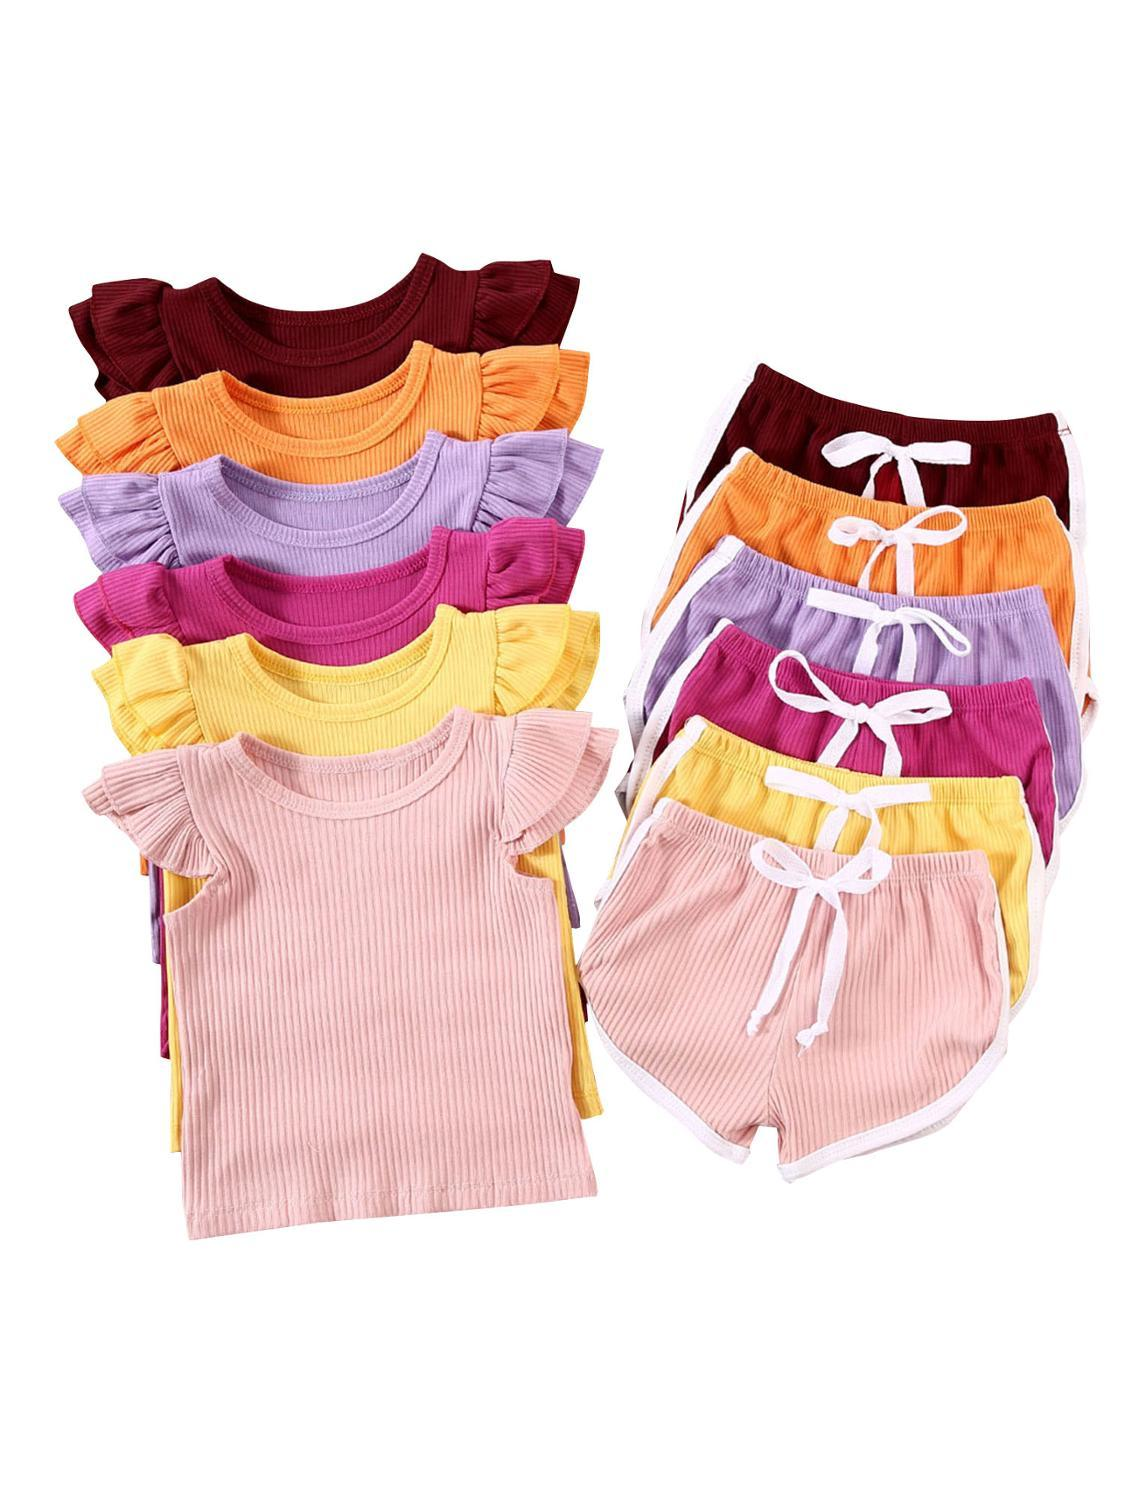 Summer Infant Baby Girls Boys Clothes Sets Ruffles Short Sleeve Pullover T Shirts Shorts Solid Outfits 2020 New